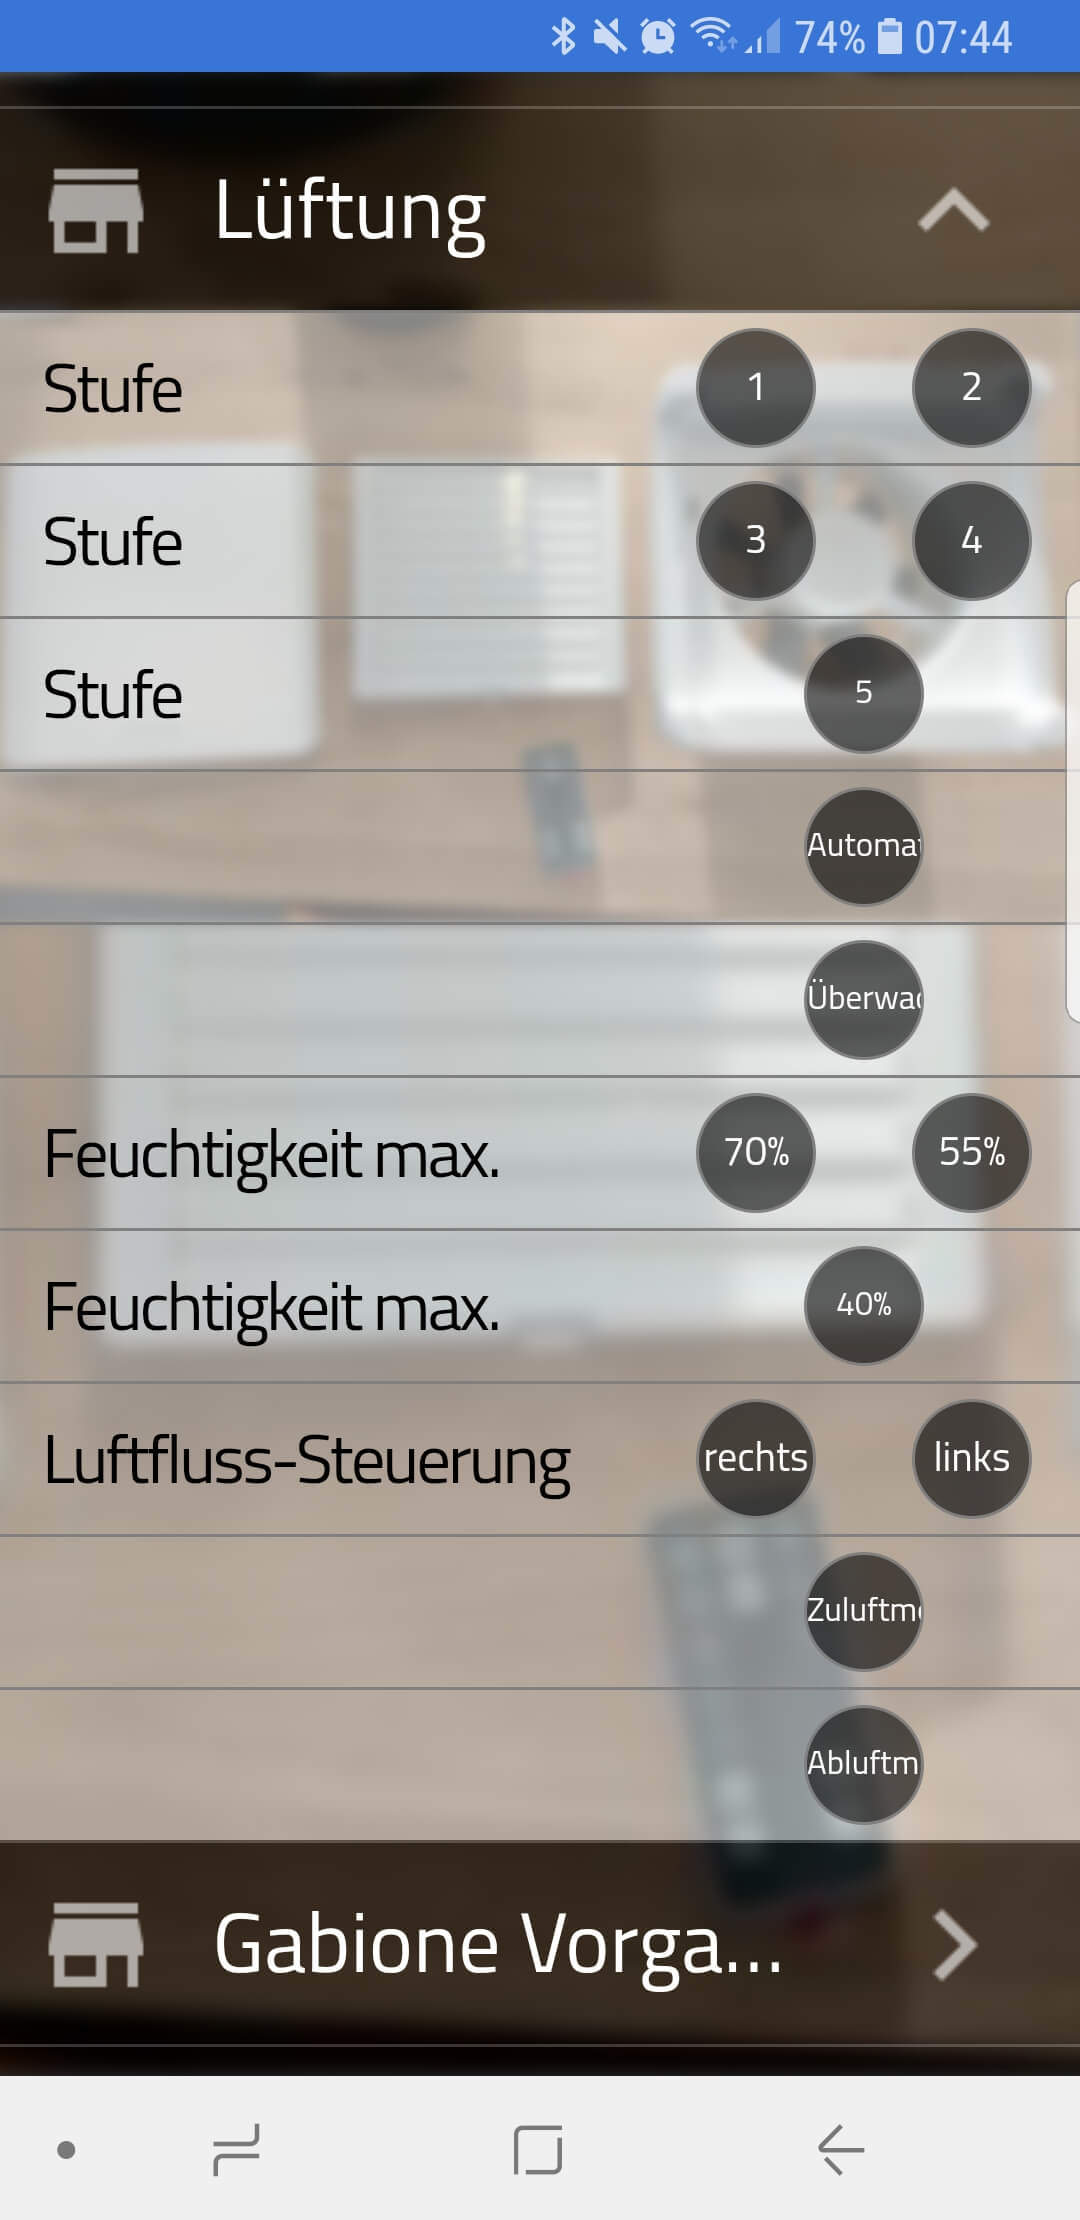 hausautomation mit light manager air smart home g nstig nachr sten. Black Bedroom Furniture Sets. Home Design Ideas